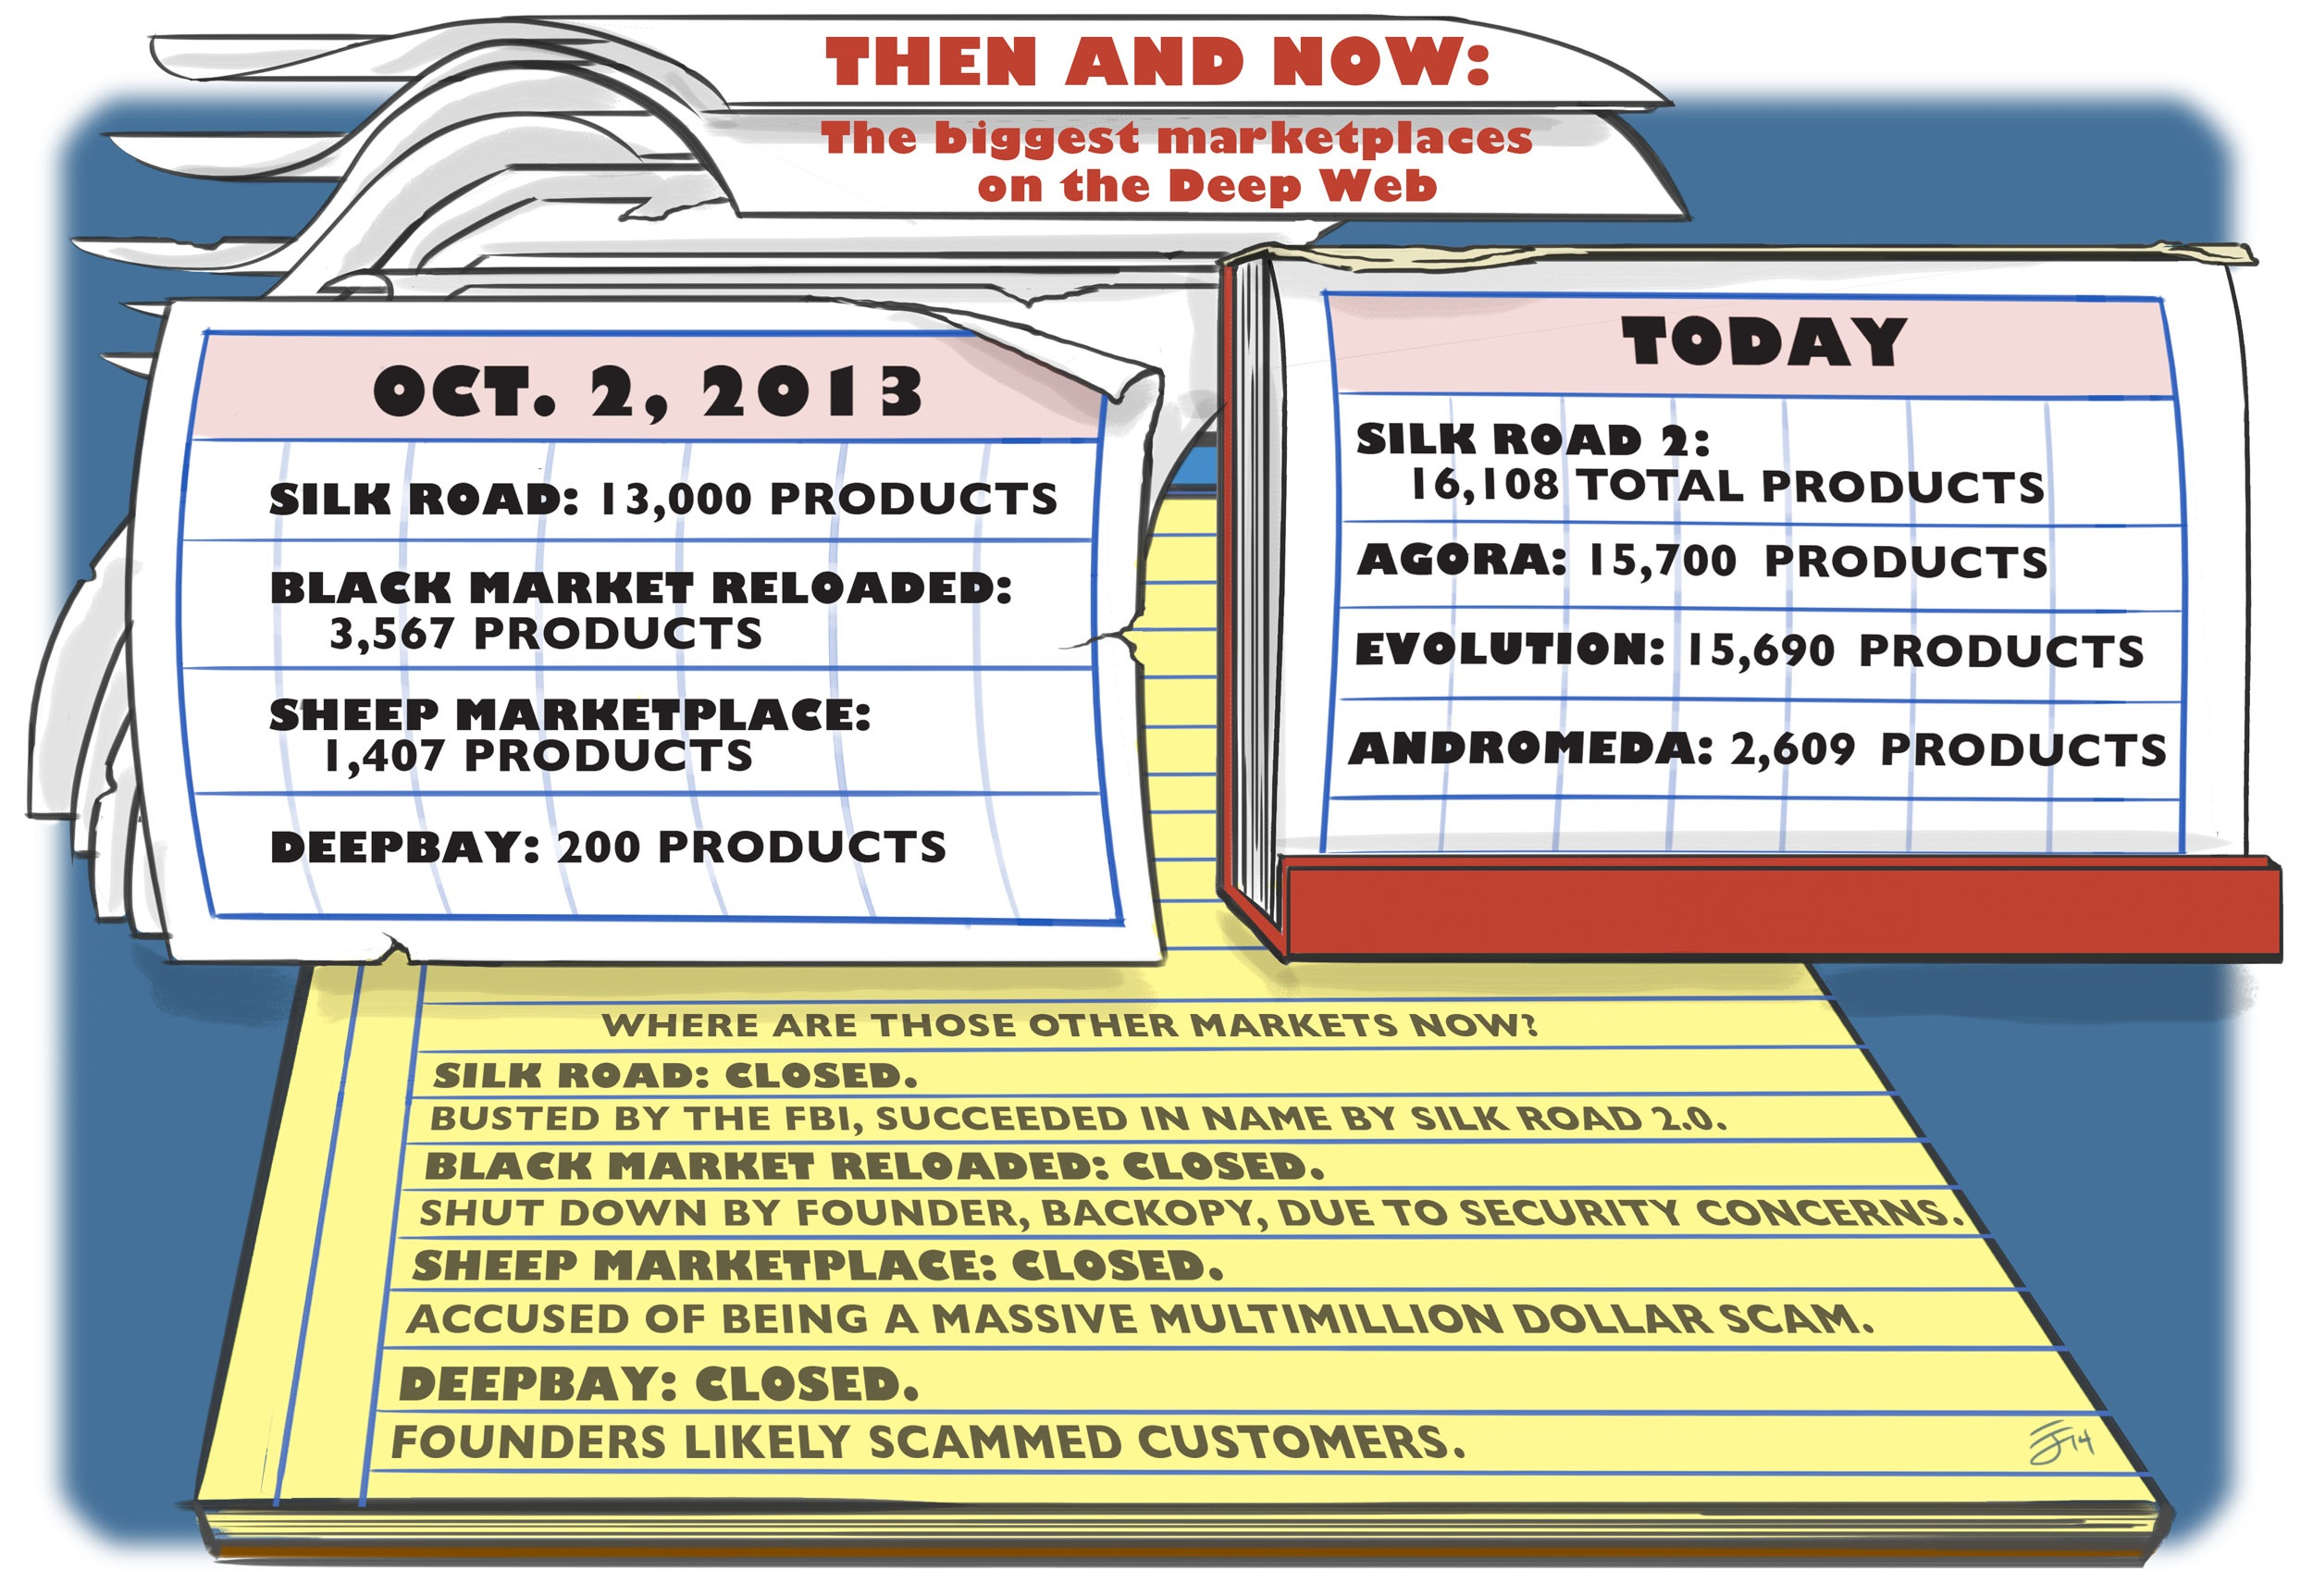 Then and Now: The biggest marketplaces on the Deep Web